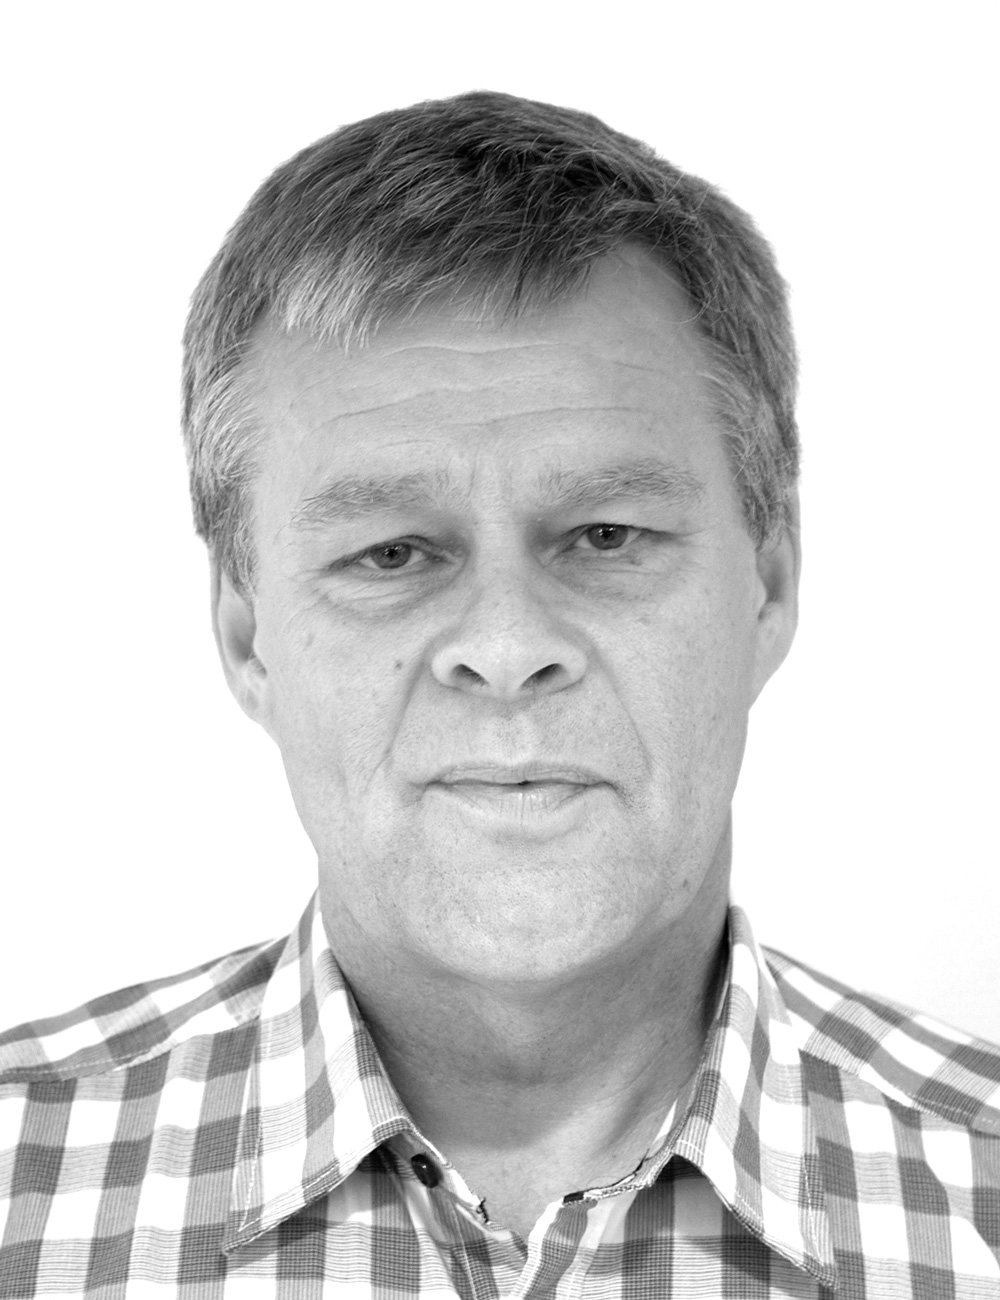 Jan Steinar Egenes Civil Engineer / Partner +47 922 52 544 jan.egenes@kontur.as